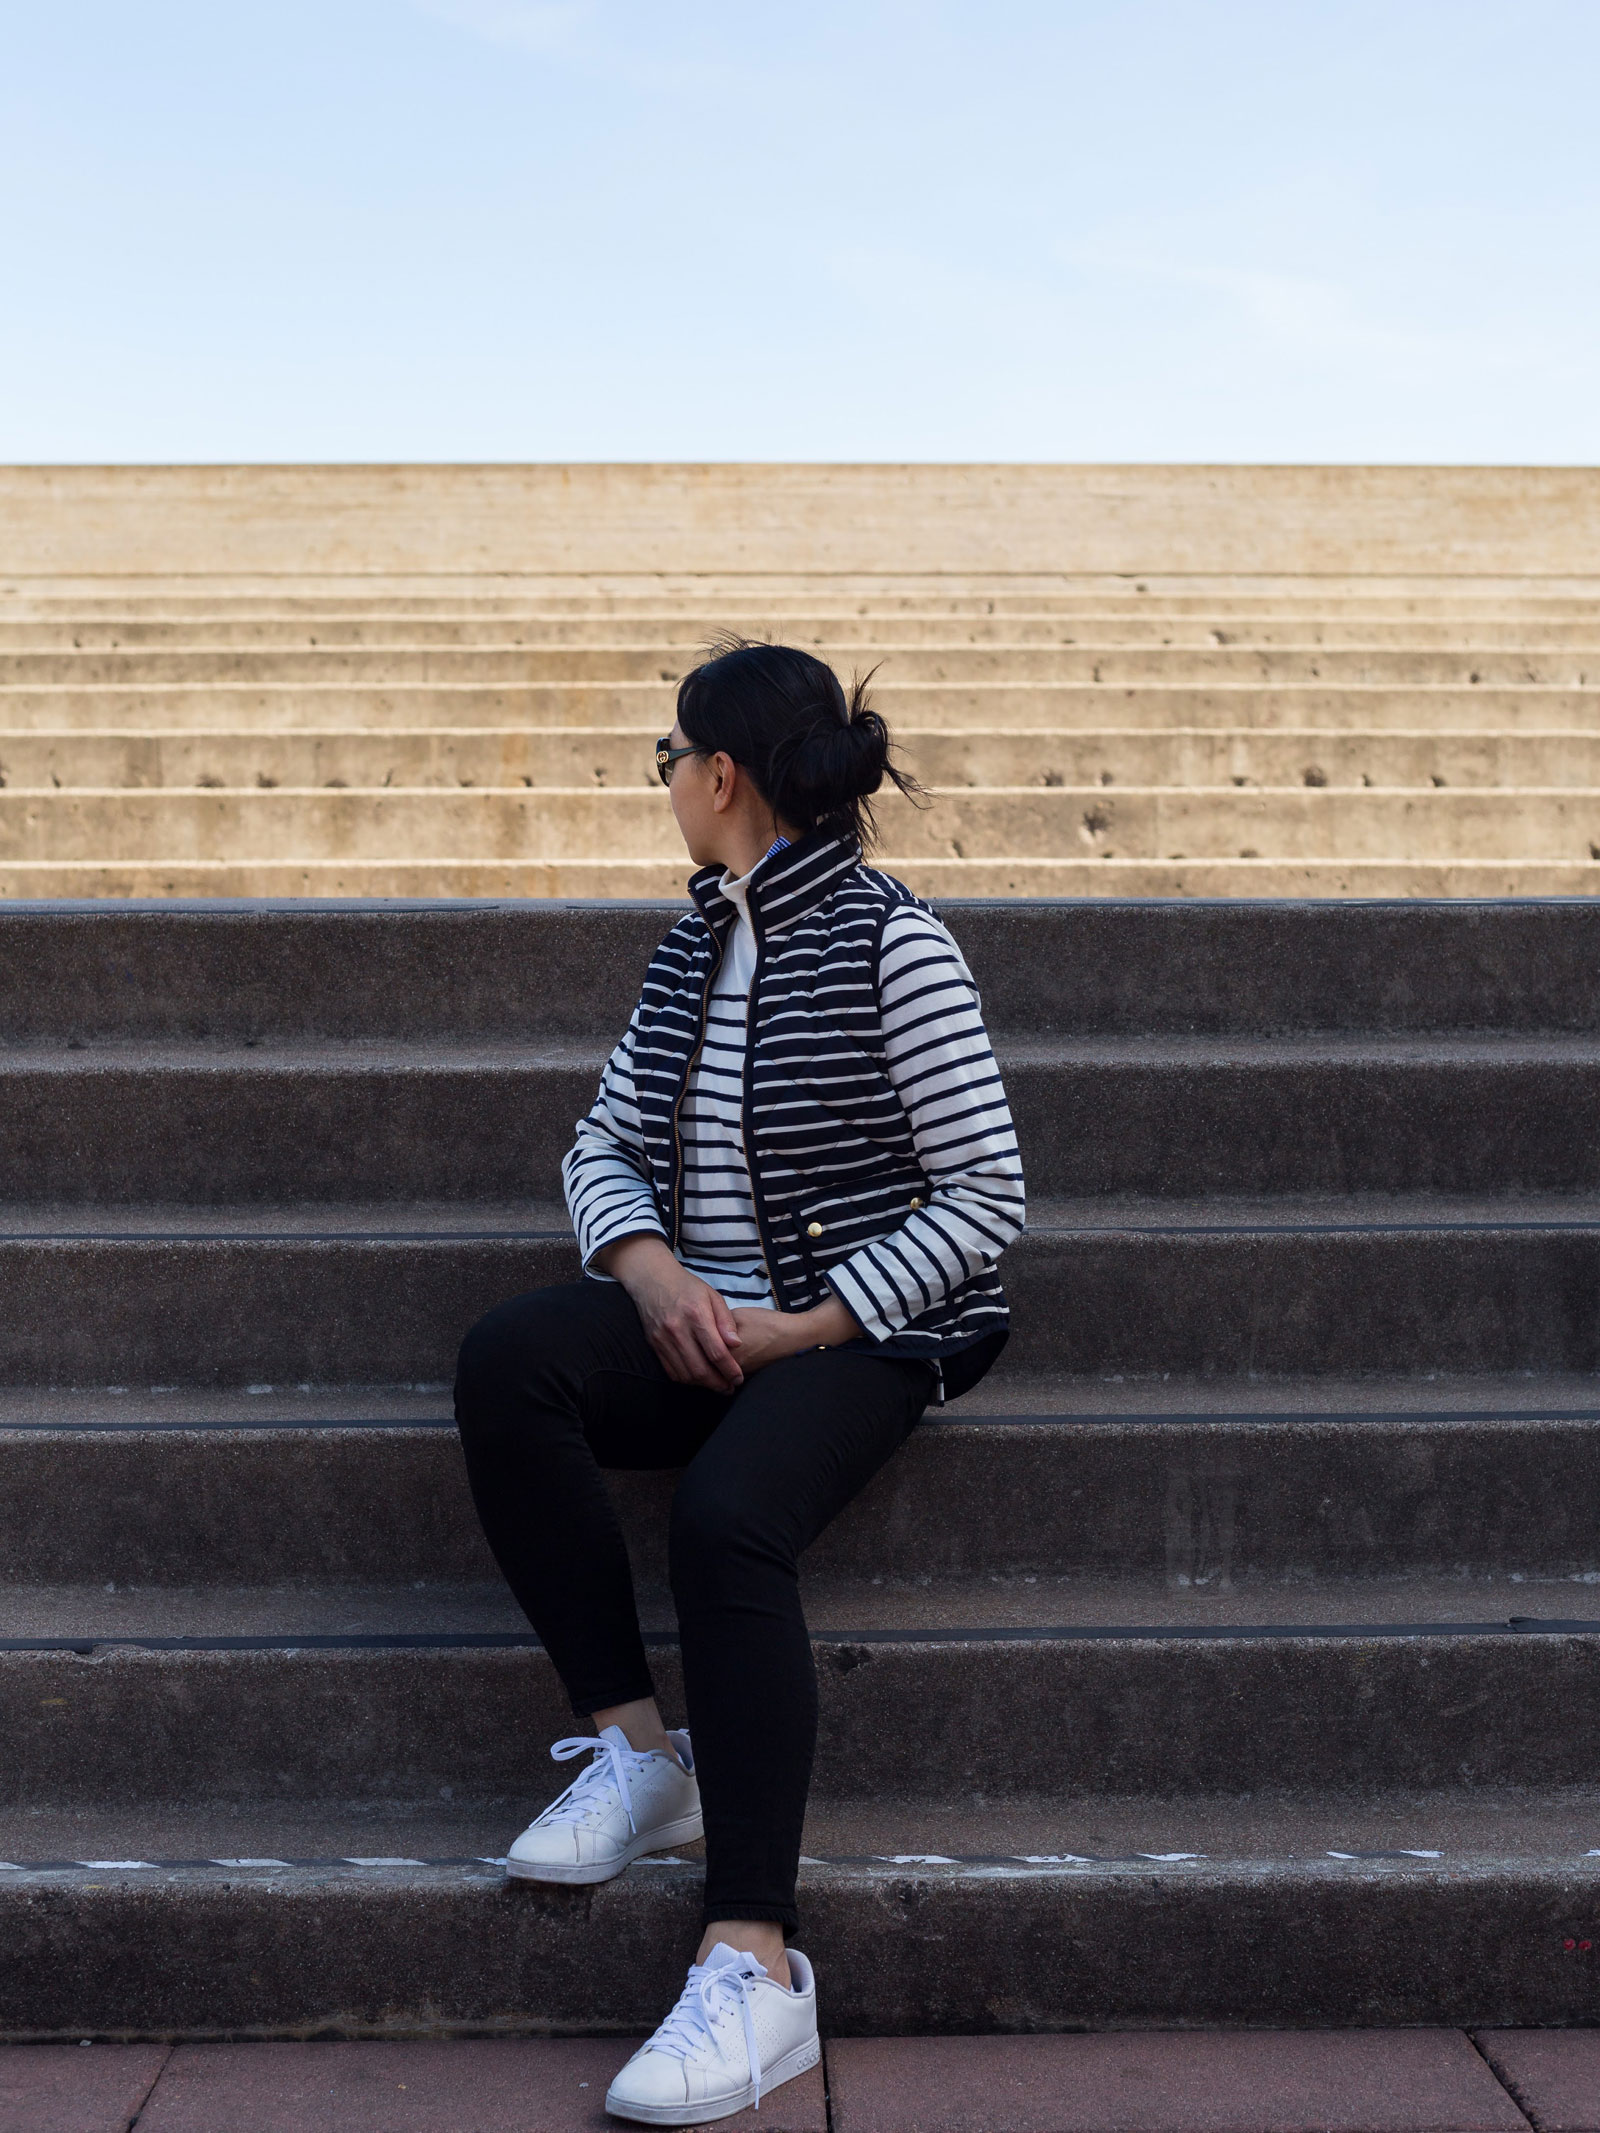 Striped mockneck shirt | striped vest | black skinny jeans | white tennis shoes | see the full look at www.shoppingmycloset.com #falloutfit #layering #stripes #stripedvest